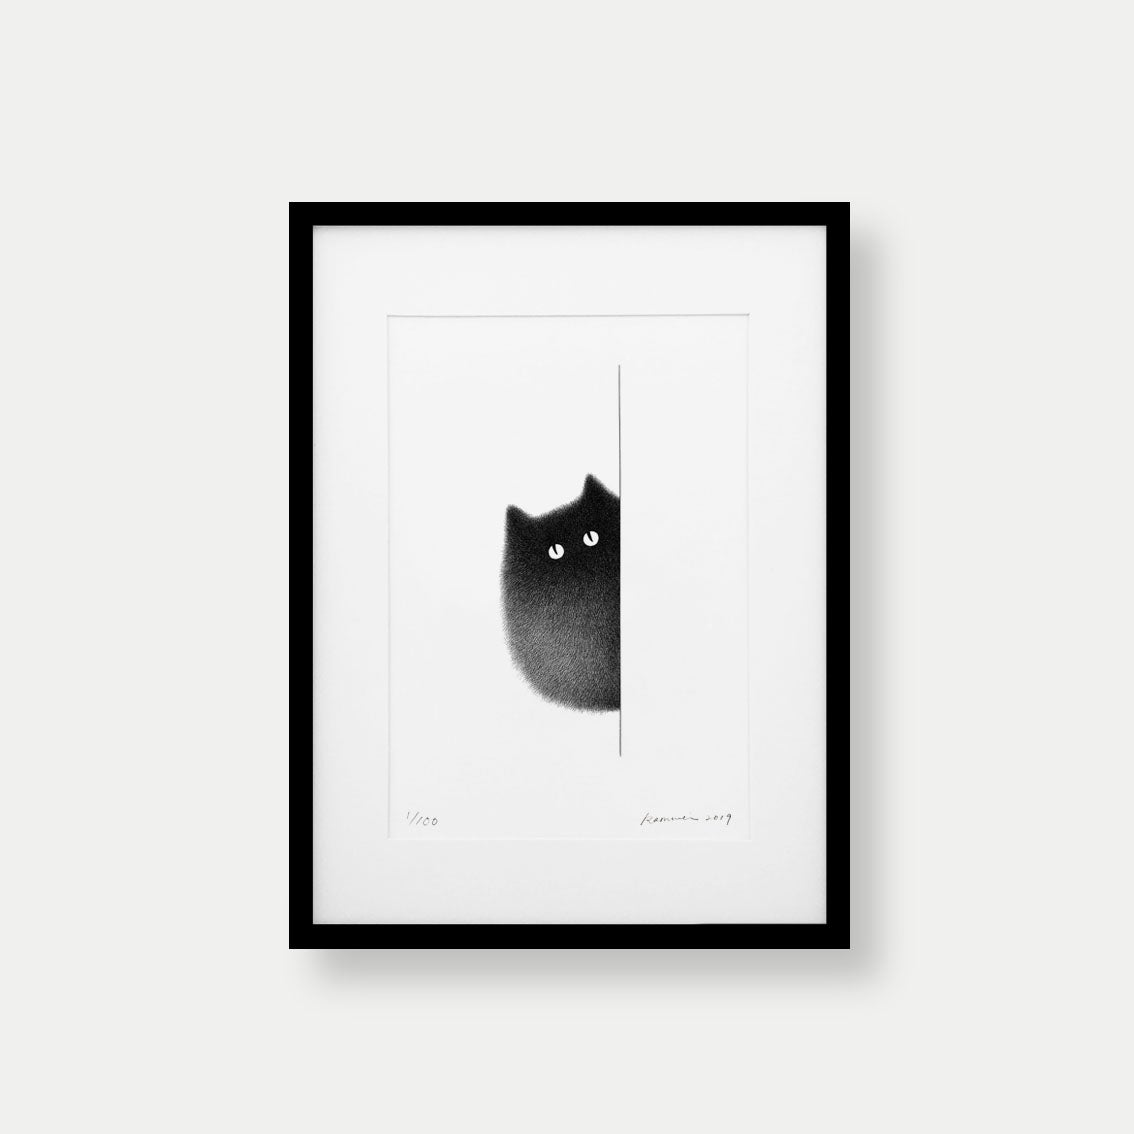 Image of Kitty No.50 – A3 Limited Edition Print